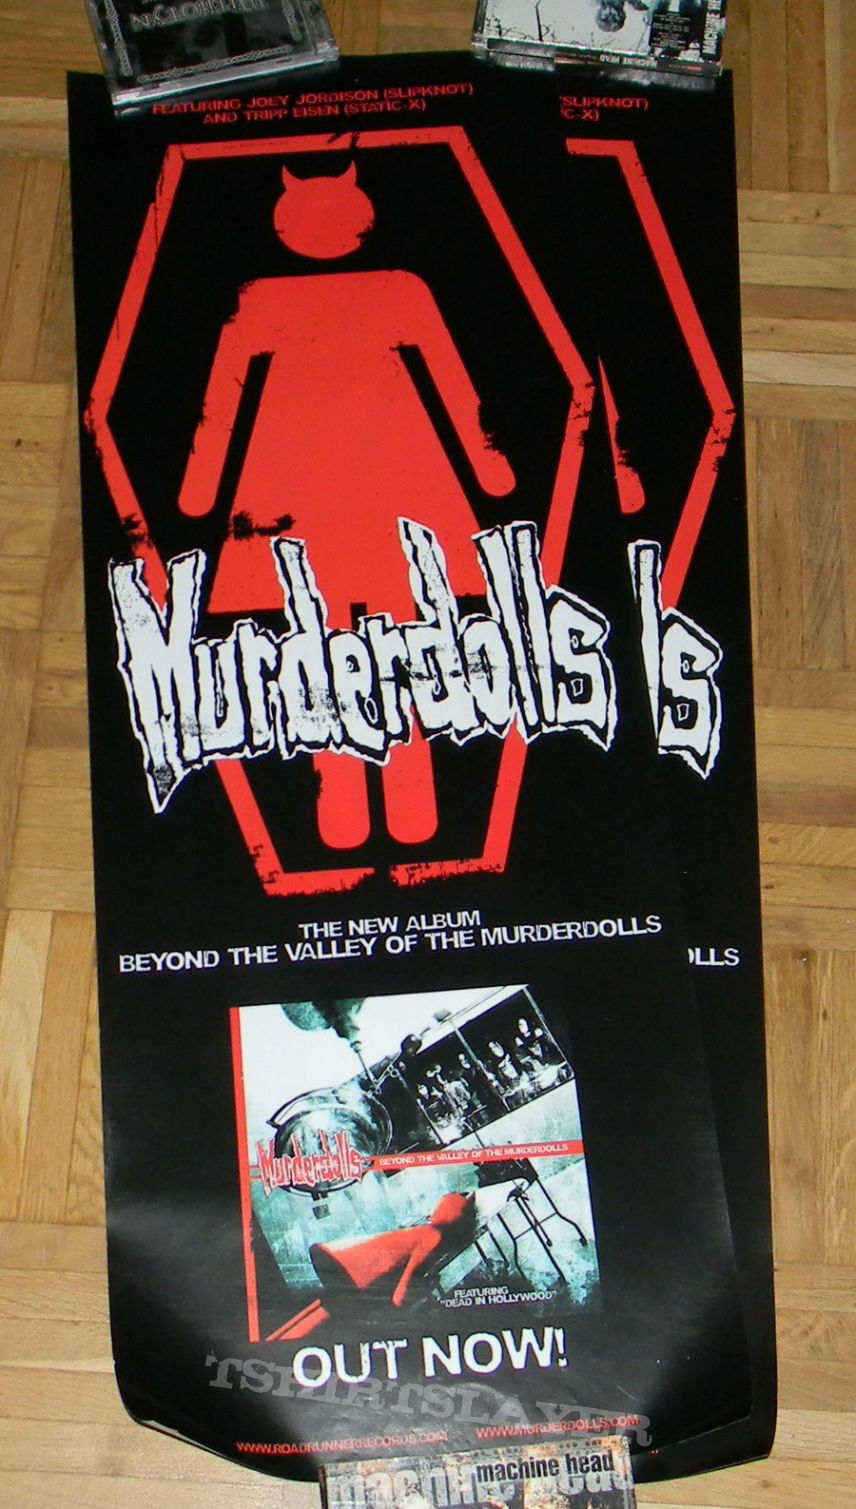 Murderdolls - Beyond the valley of the murderdolls - Promo poster